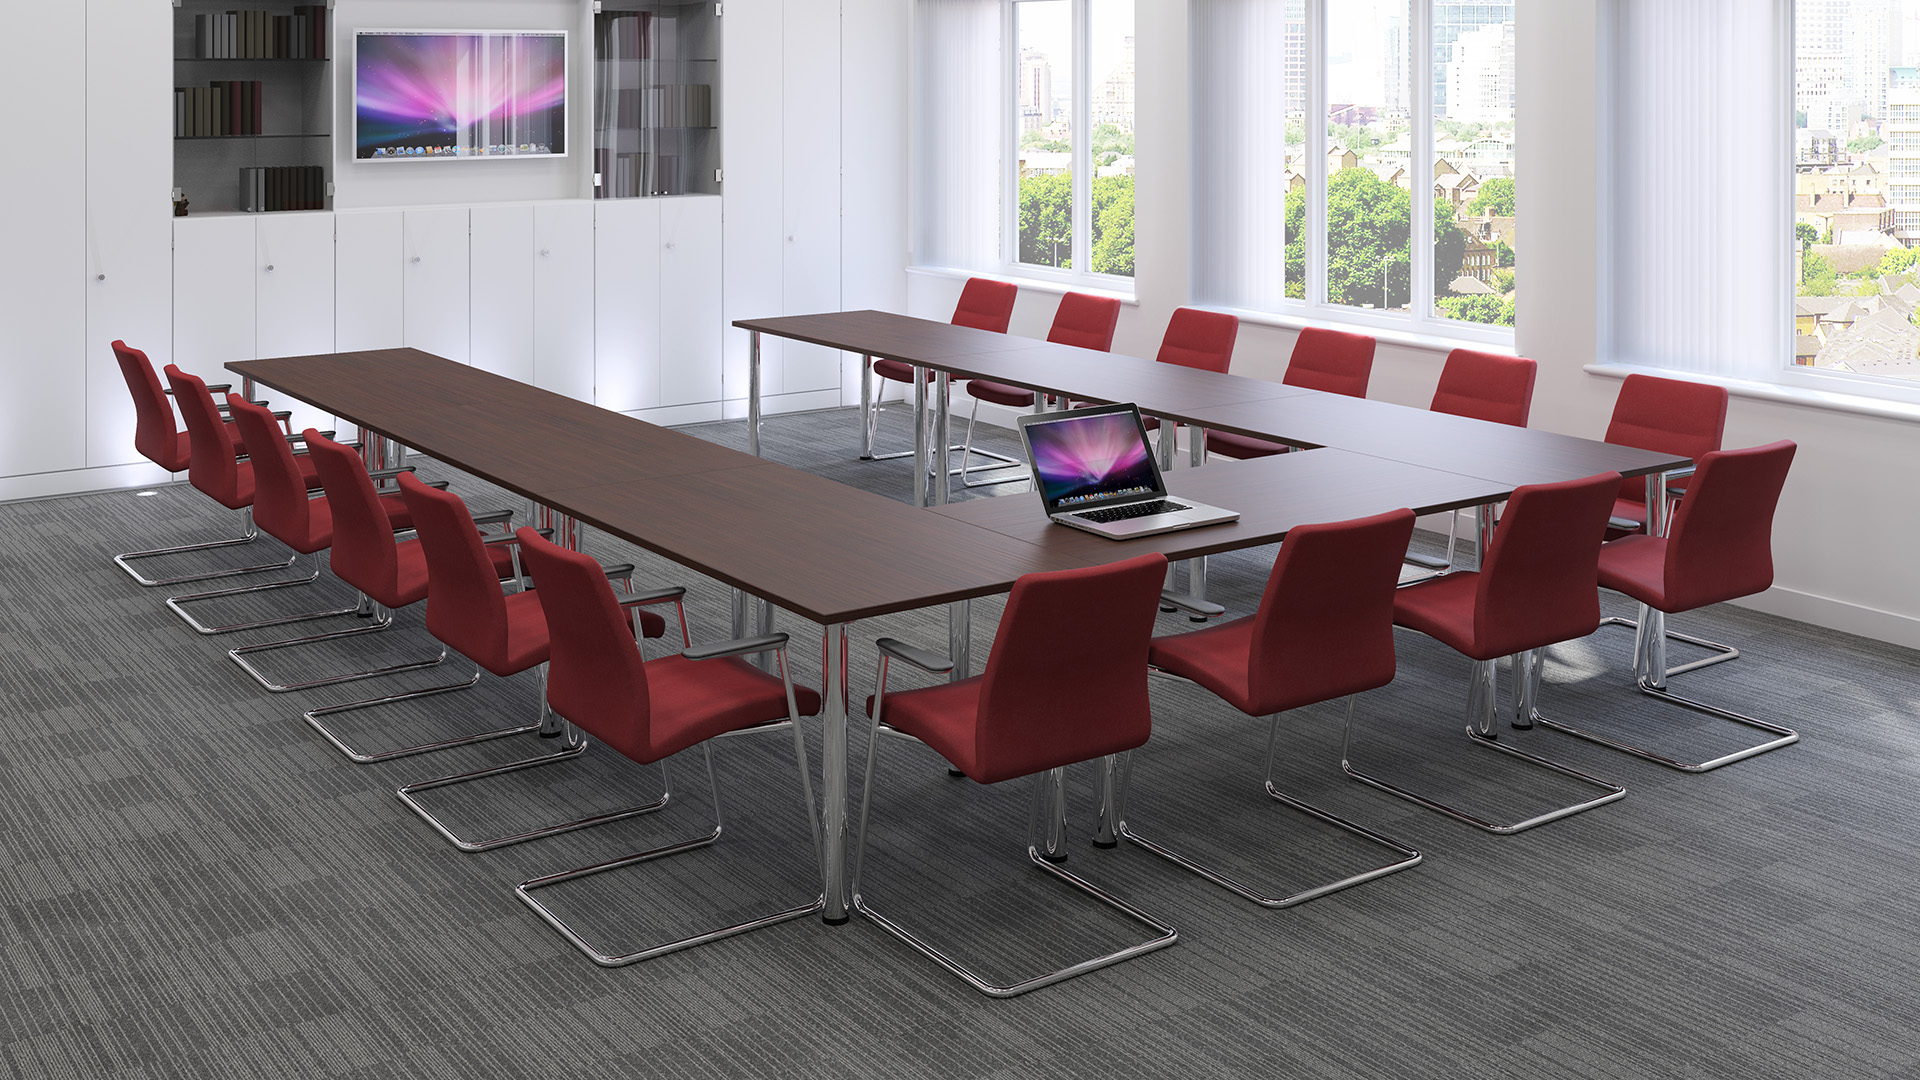 Sven Christiansen Meeting Room Furniture with display and laptop